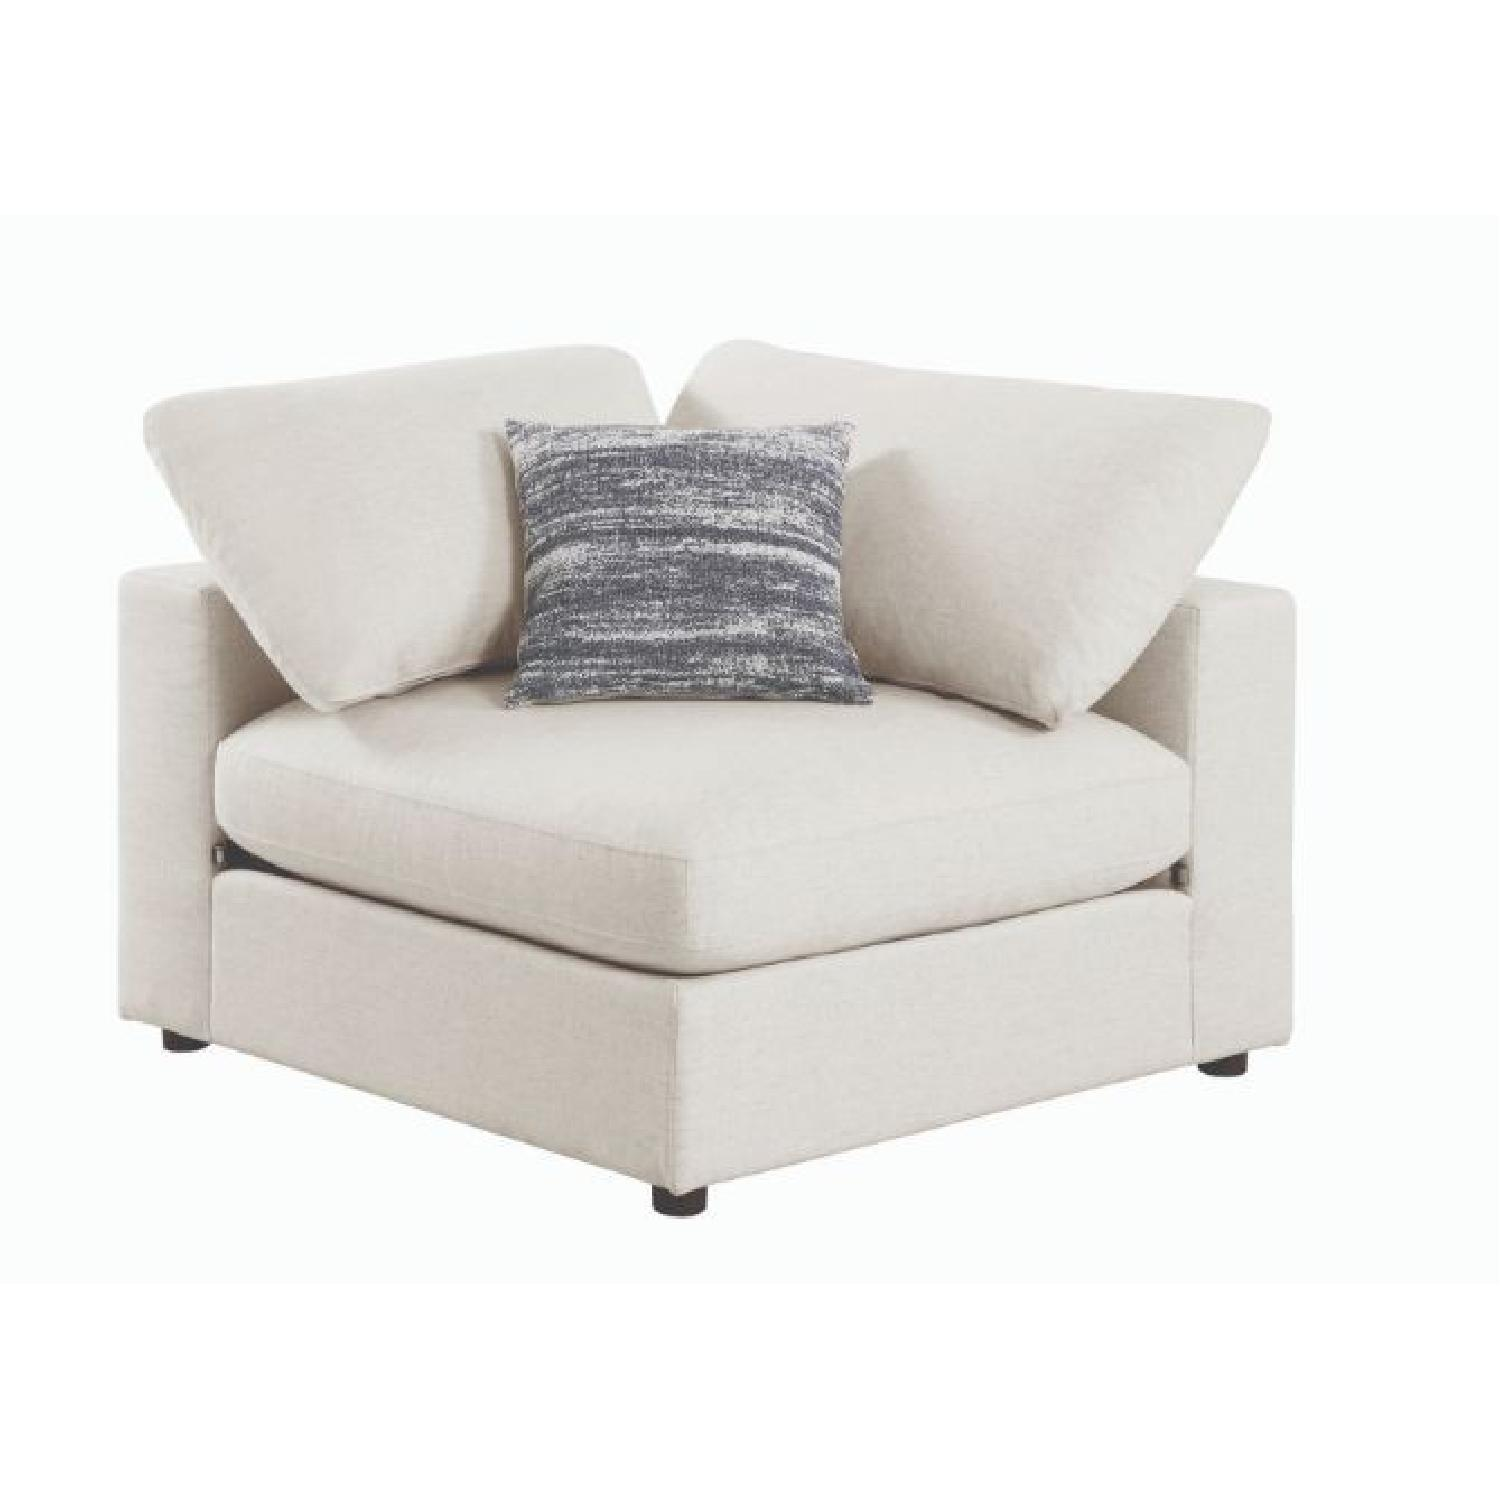 Modern Daybed w/ Trundle Upholstered in Light Grey Fabric - image-10